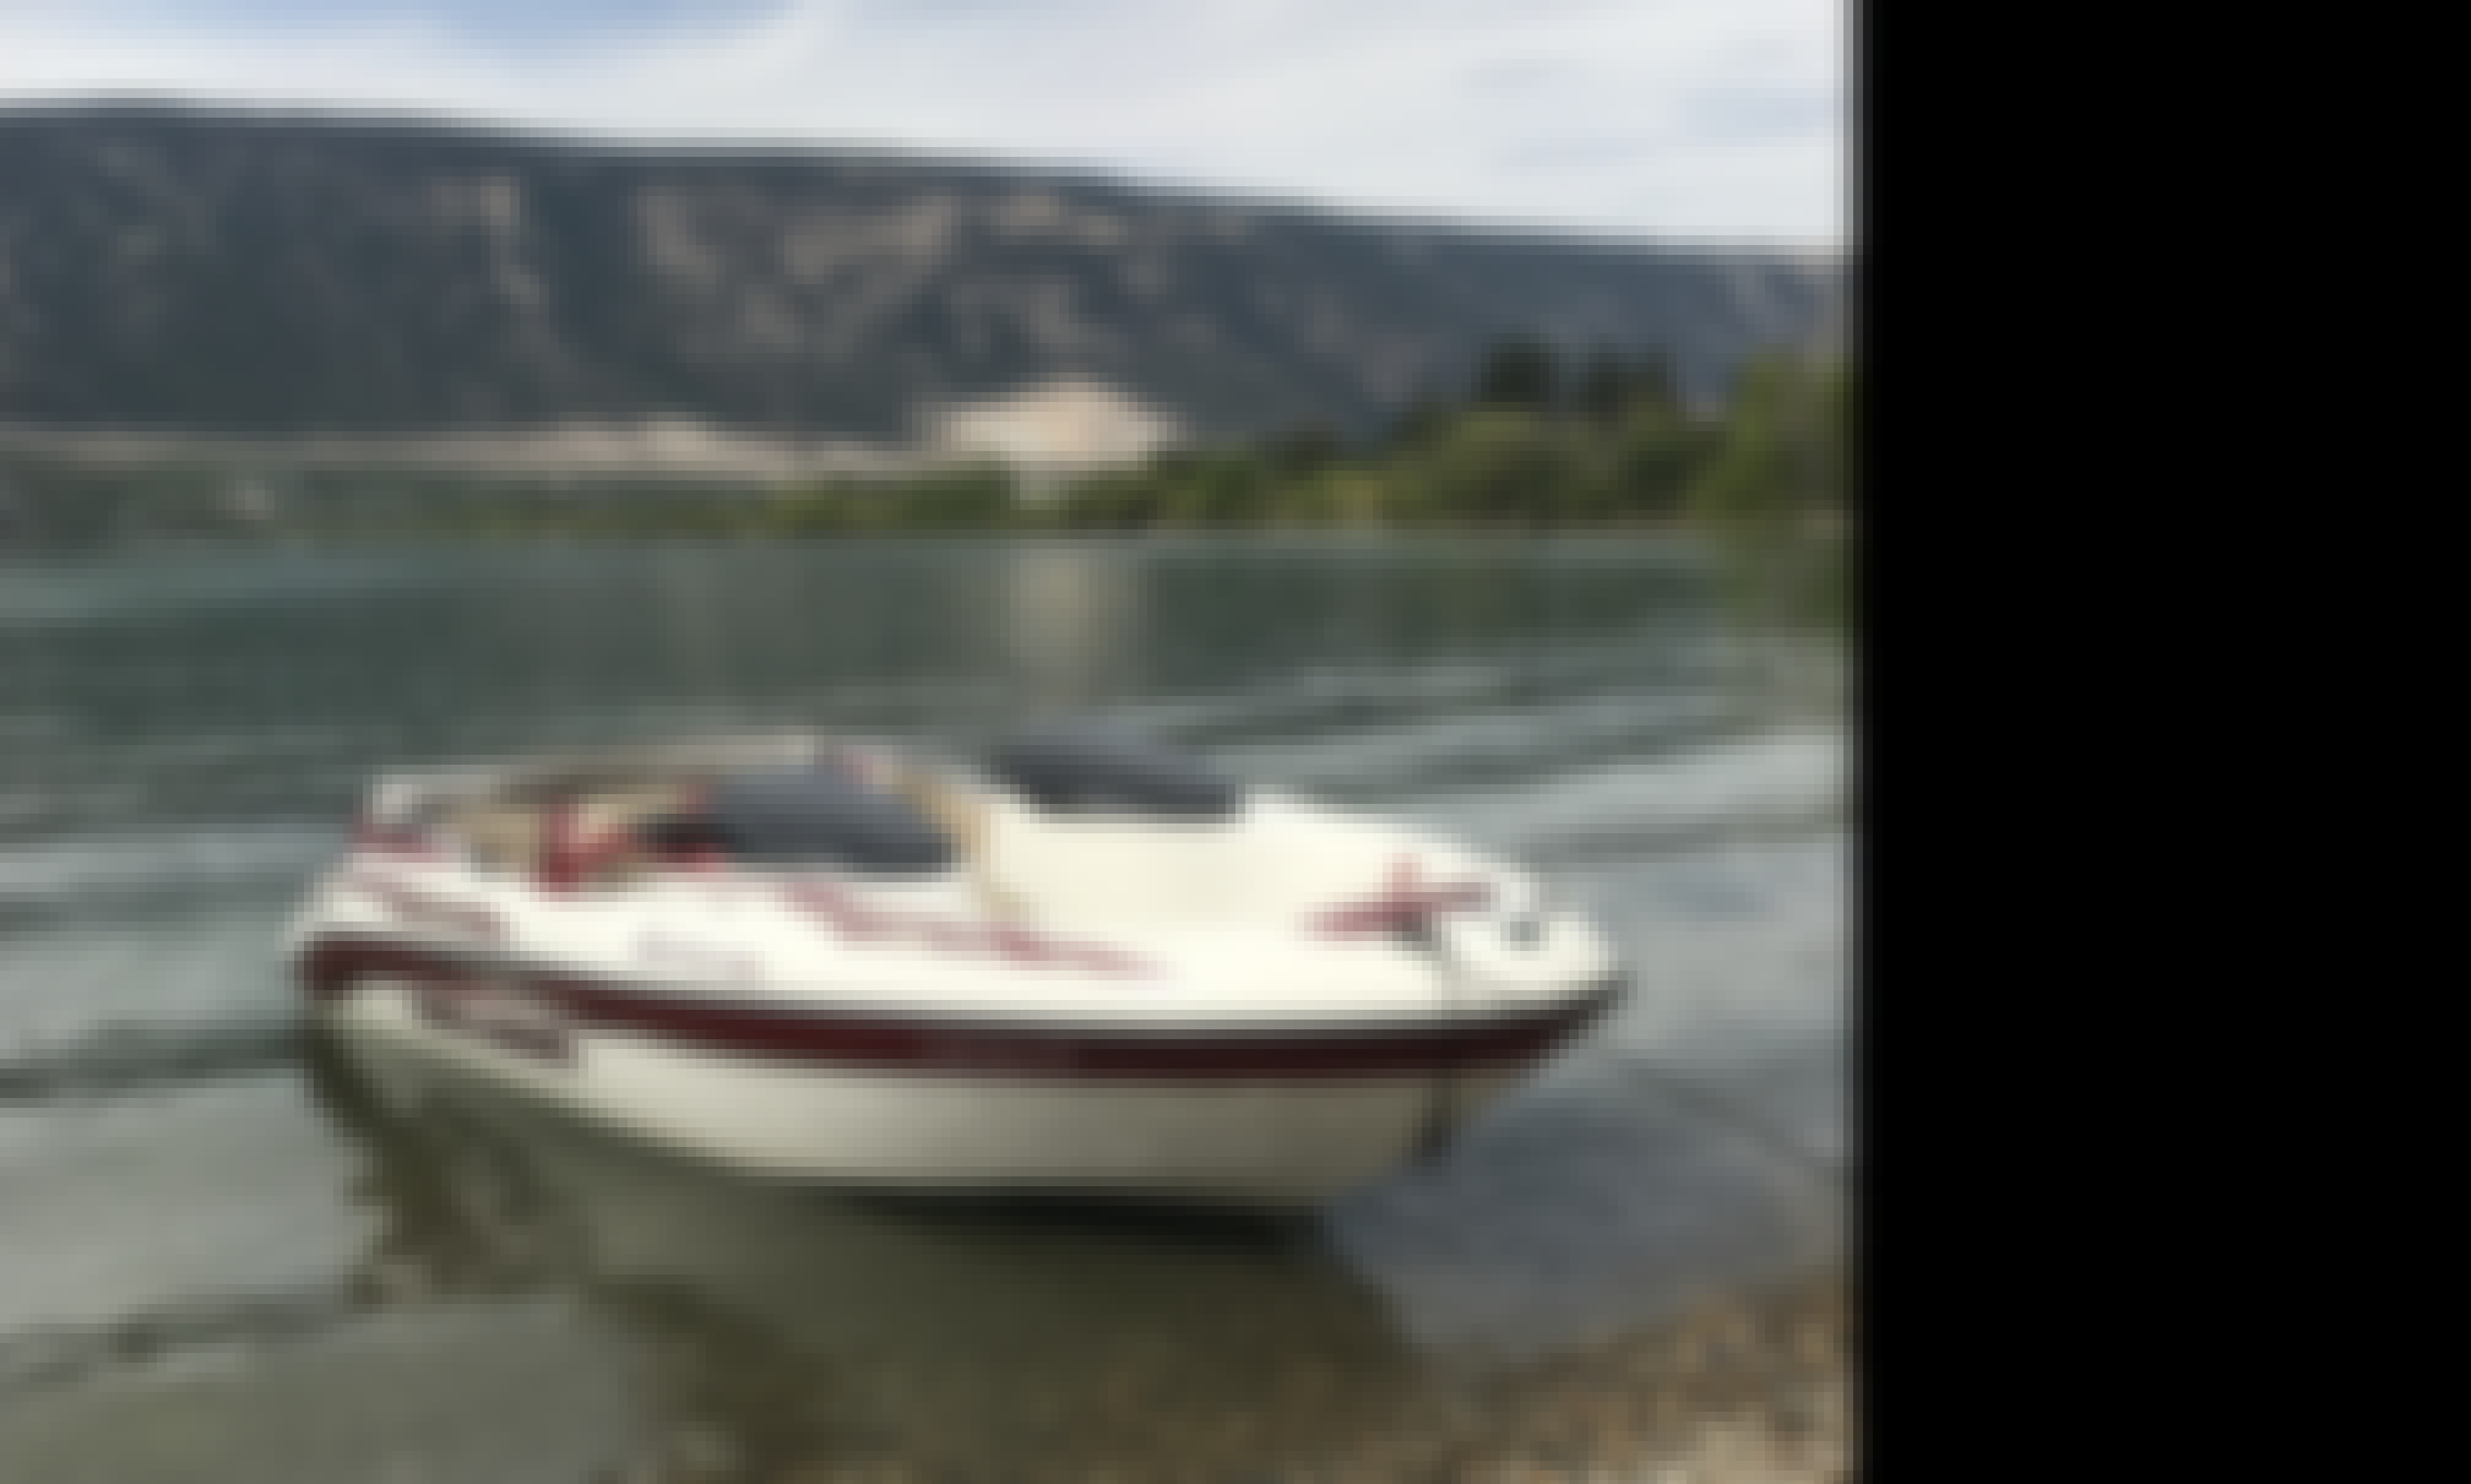 Rent this Powerboat for 7 People in Kelowna, British Columbia